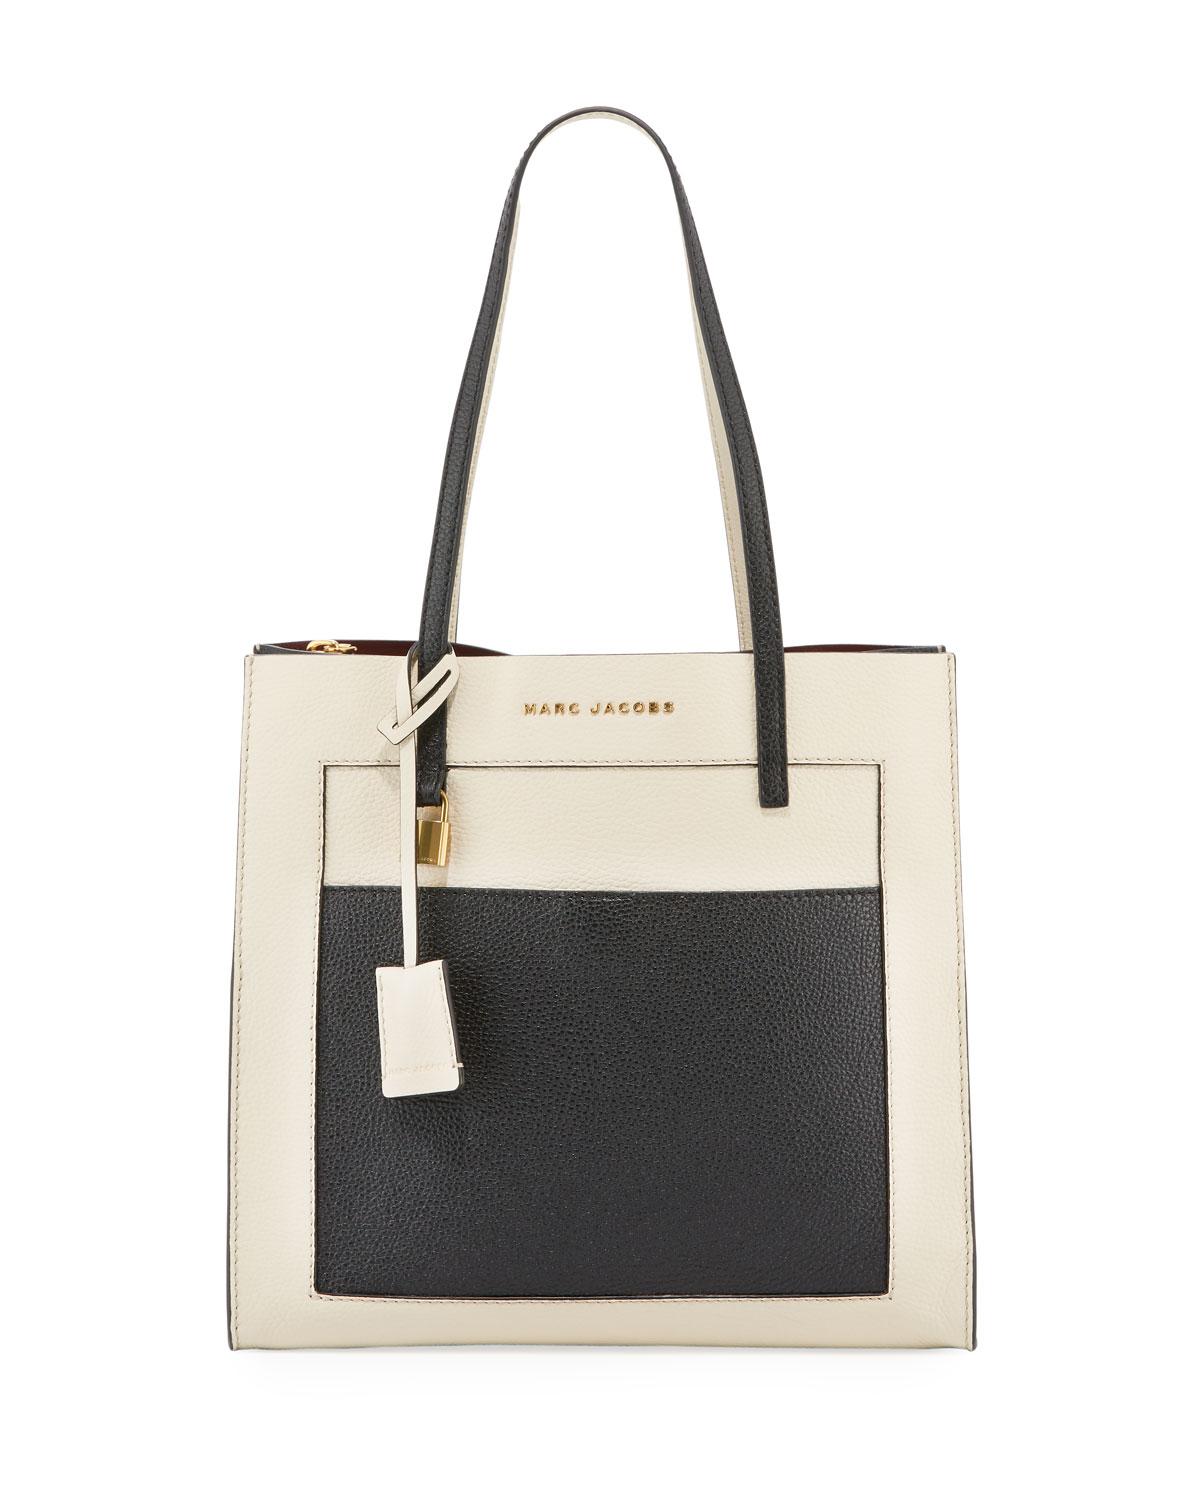 25f815e0c649 Marc Jacobs The Grind Colorblock Tote Bag